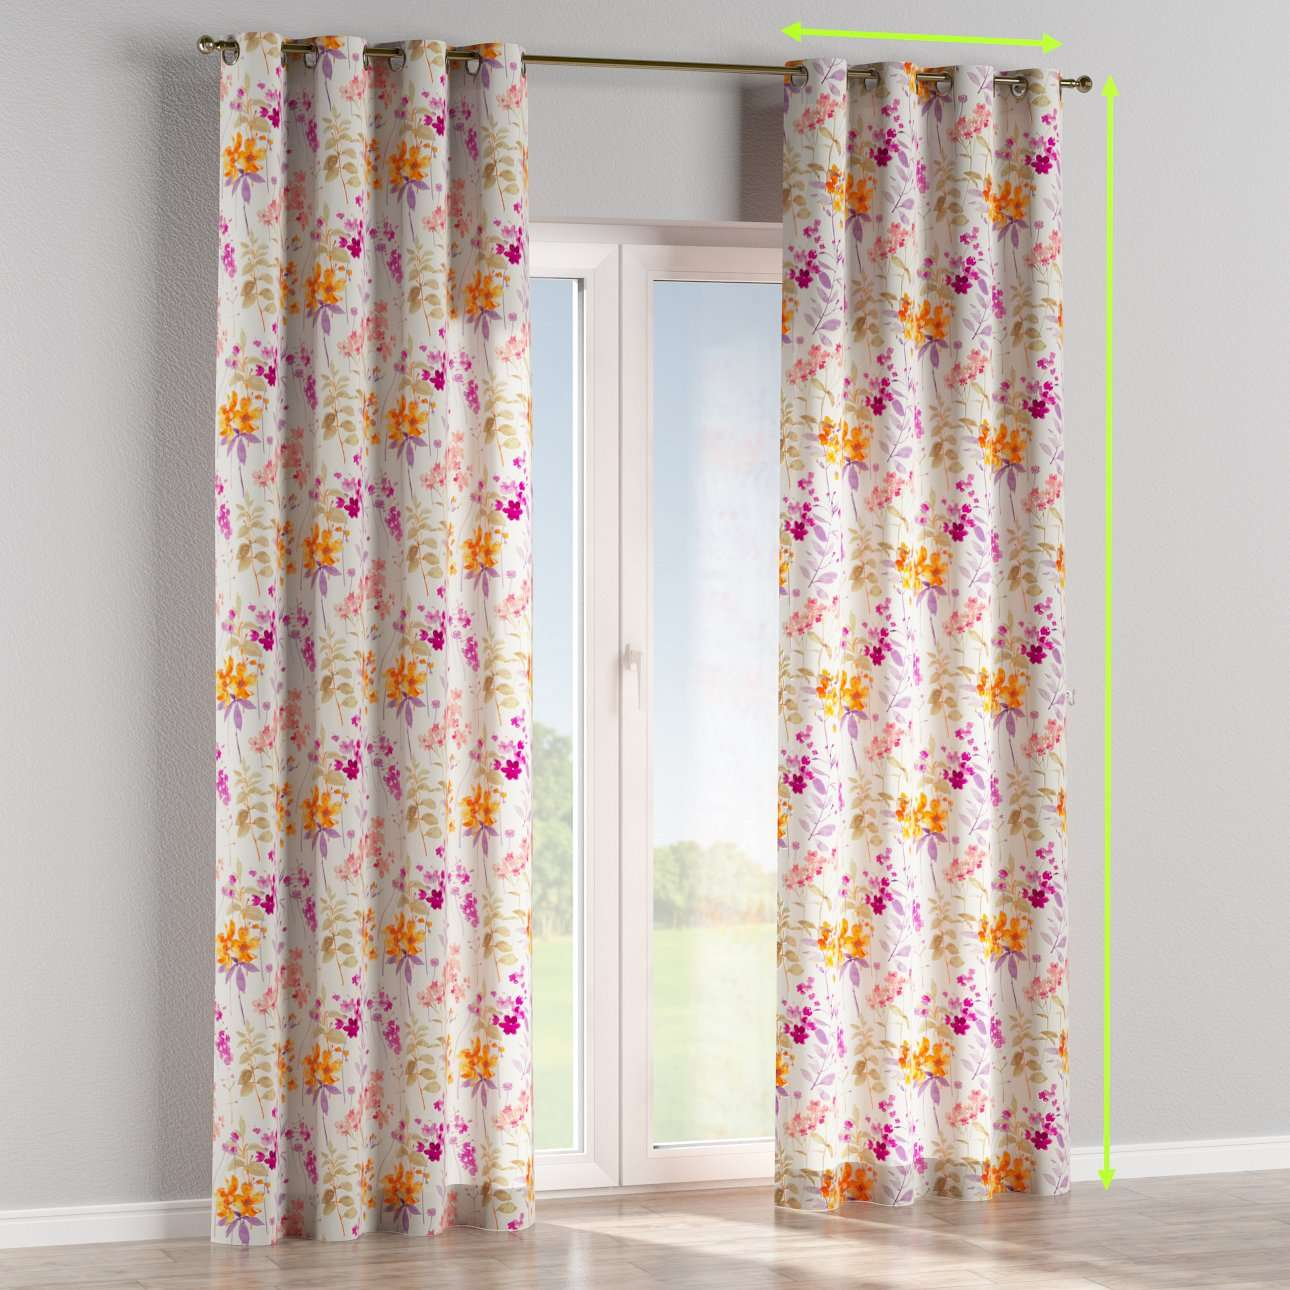 Eyelet curtains in collection Monet, fabric: 140-04